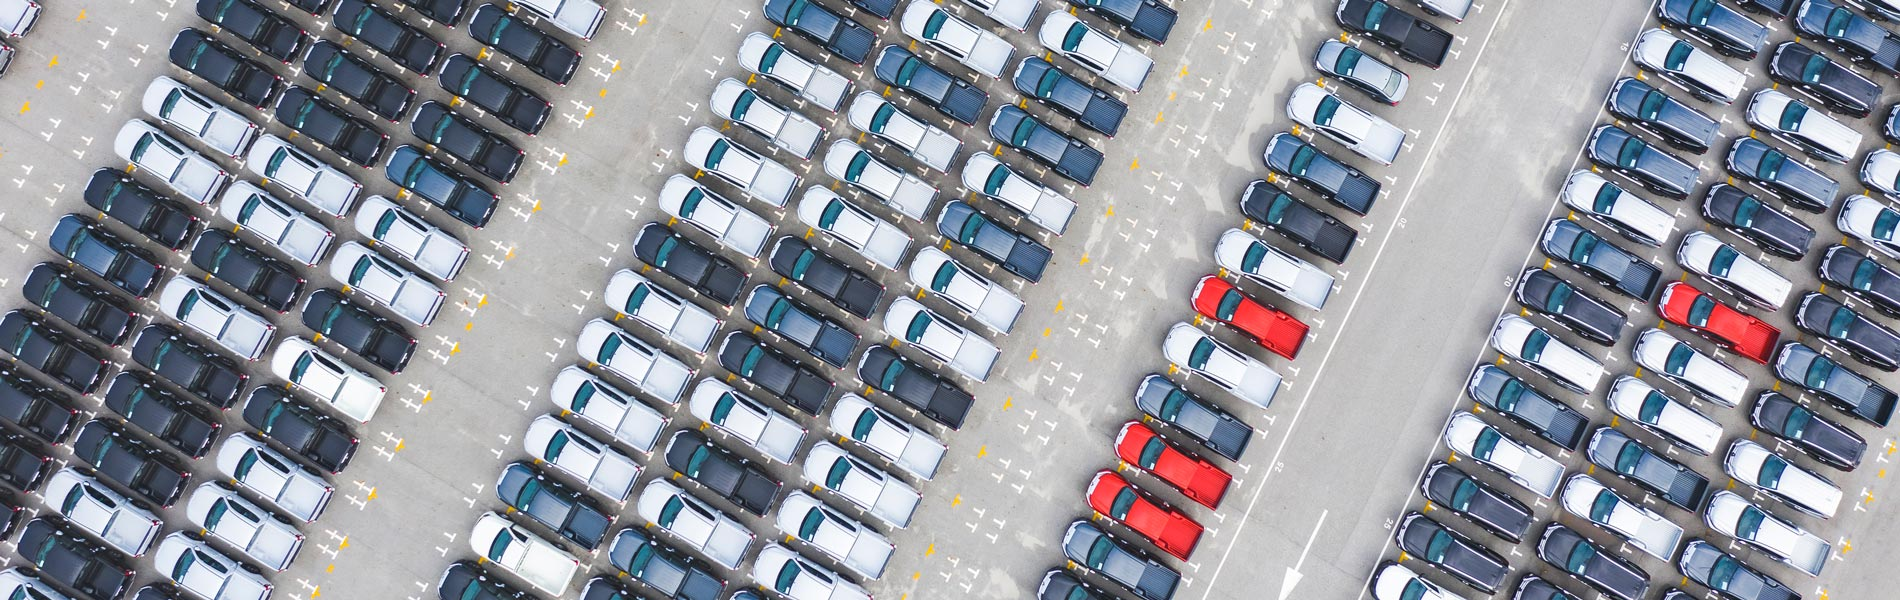 Cars parked in rows viewed from above